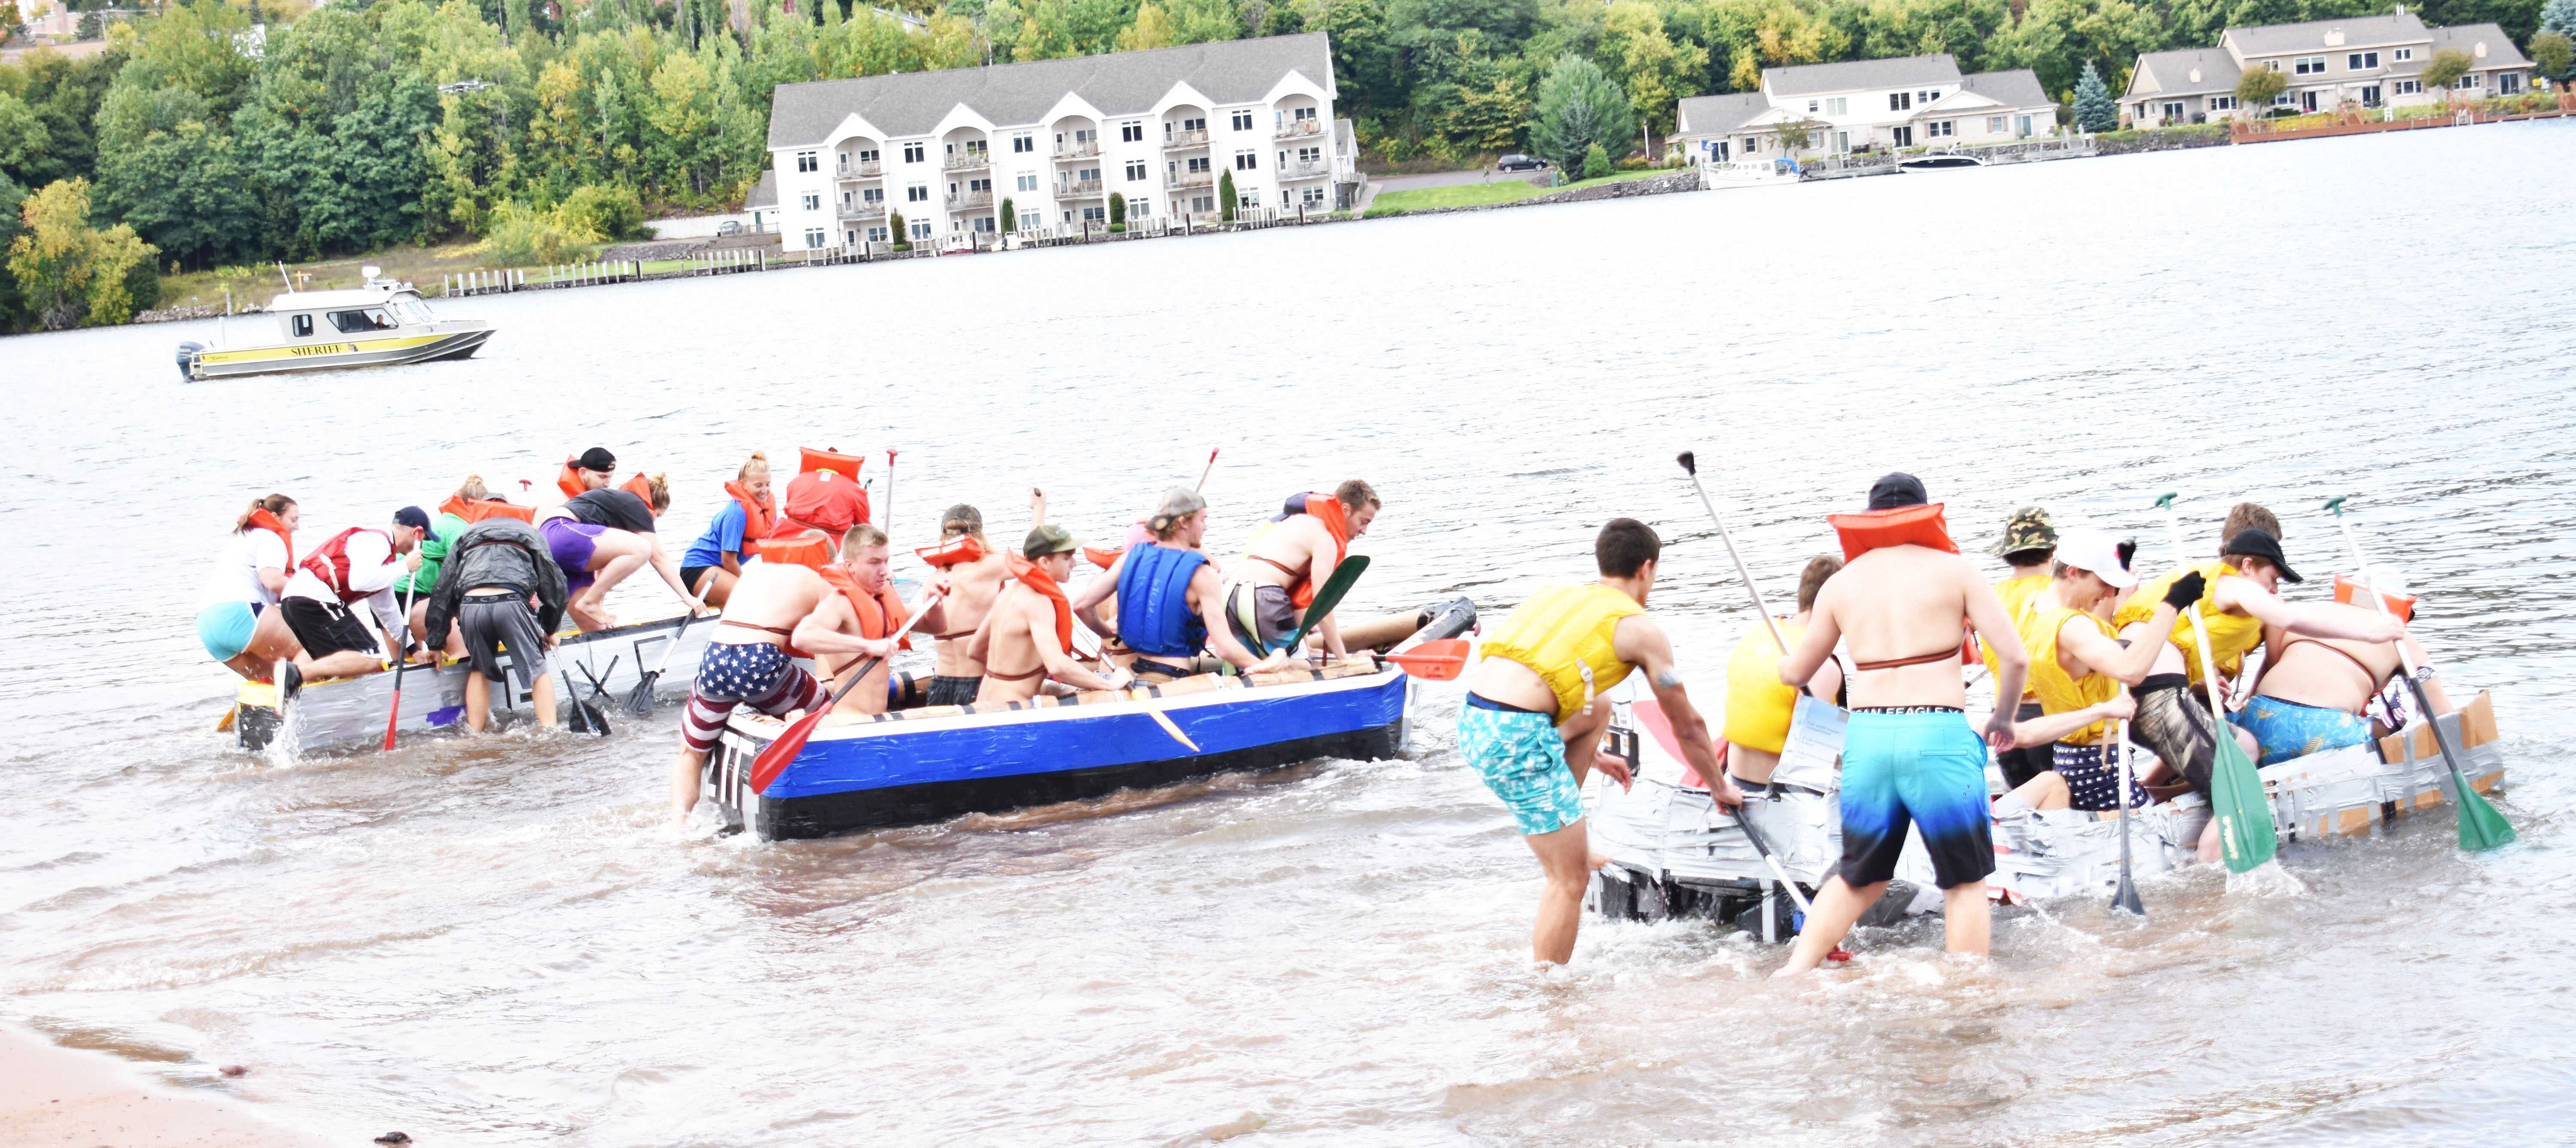 Michigan Tech's Cardboard Boat Races: Sink or swim?